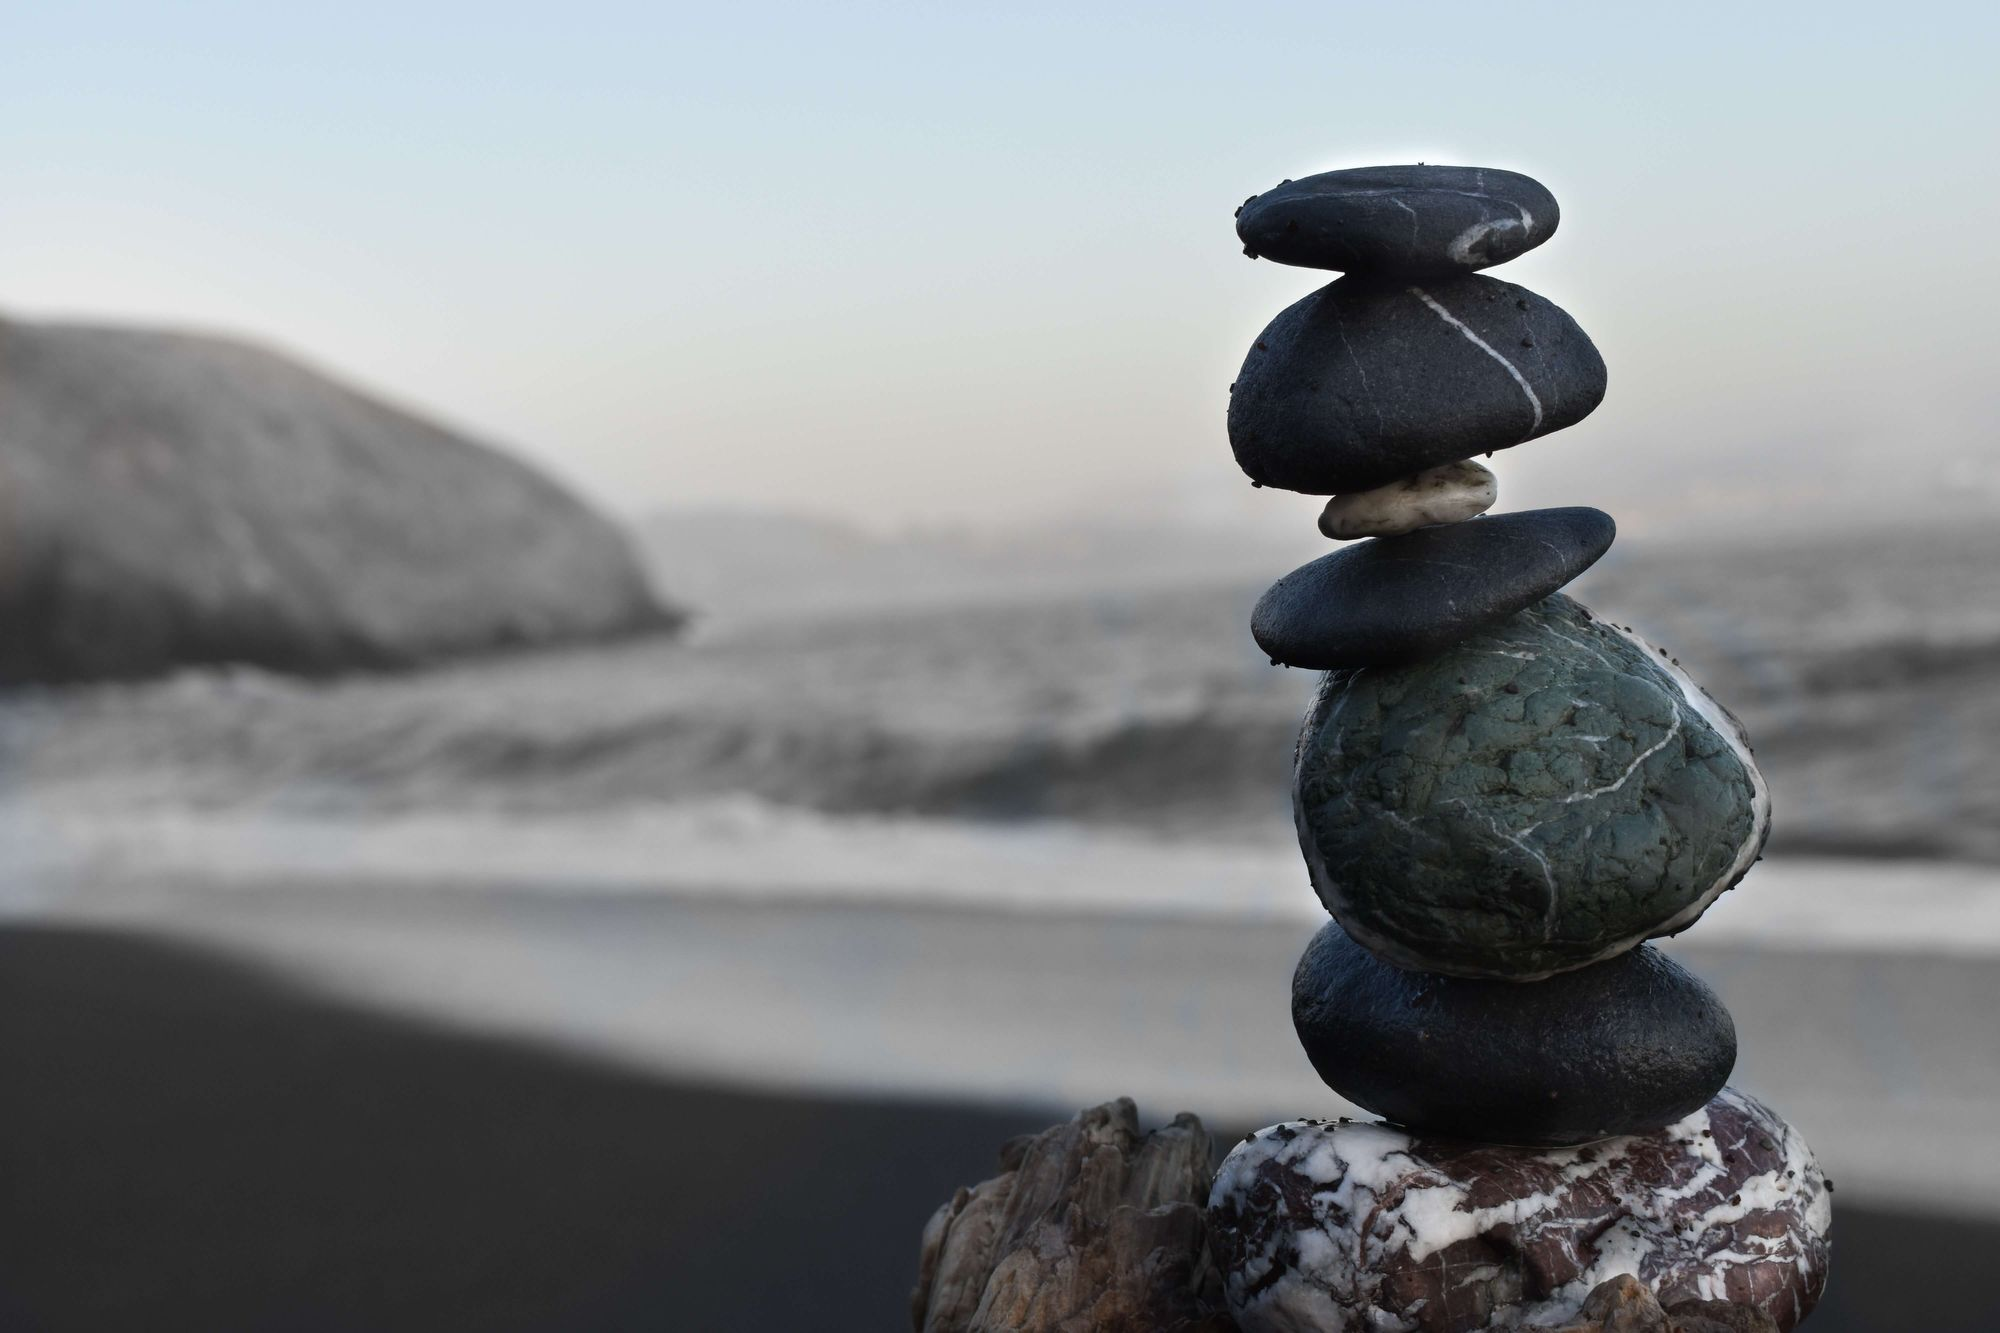 2018 - In Search for balance